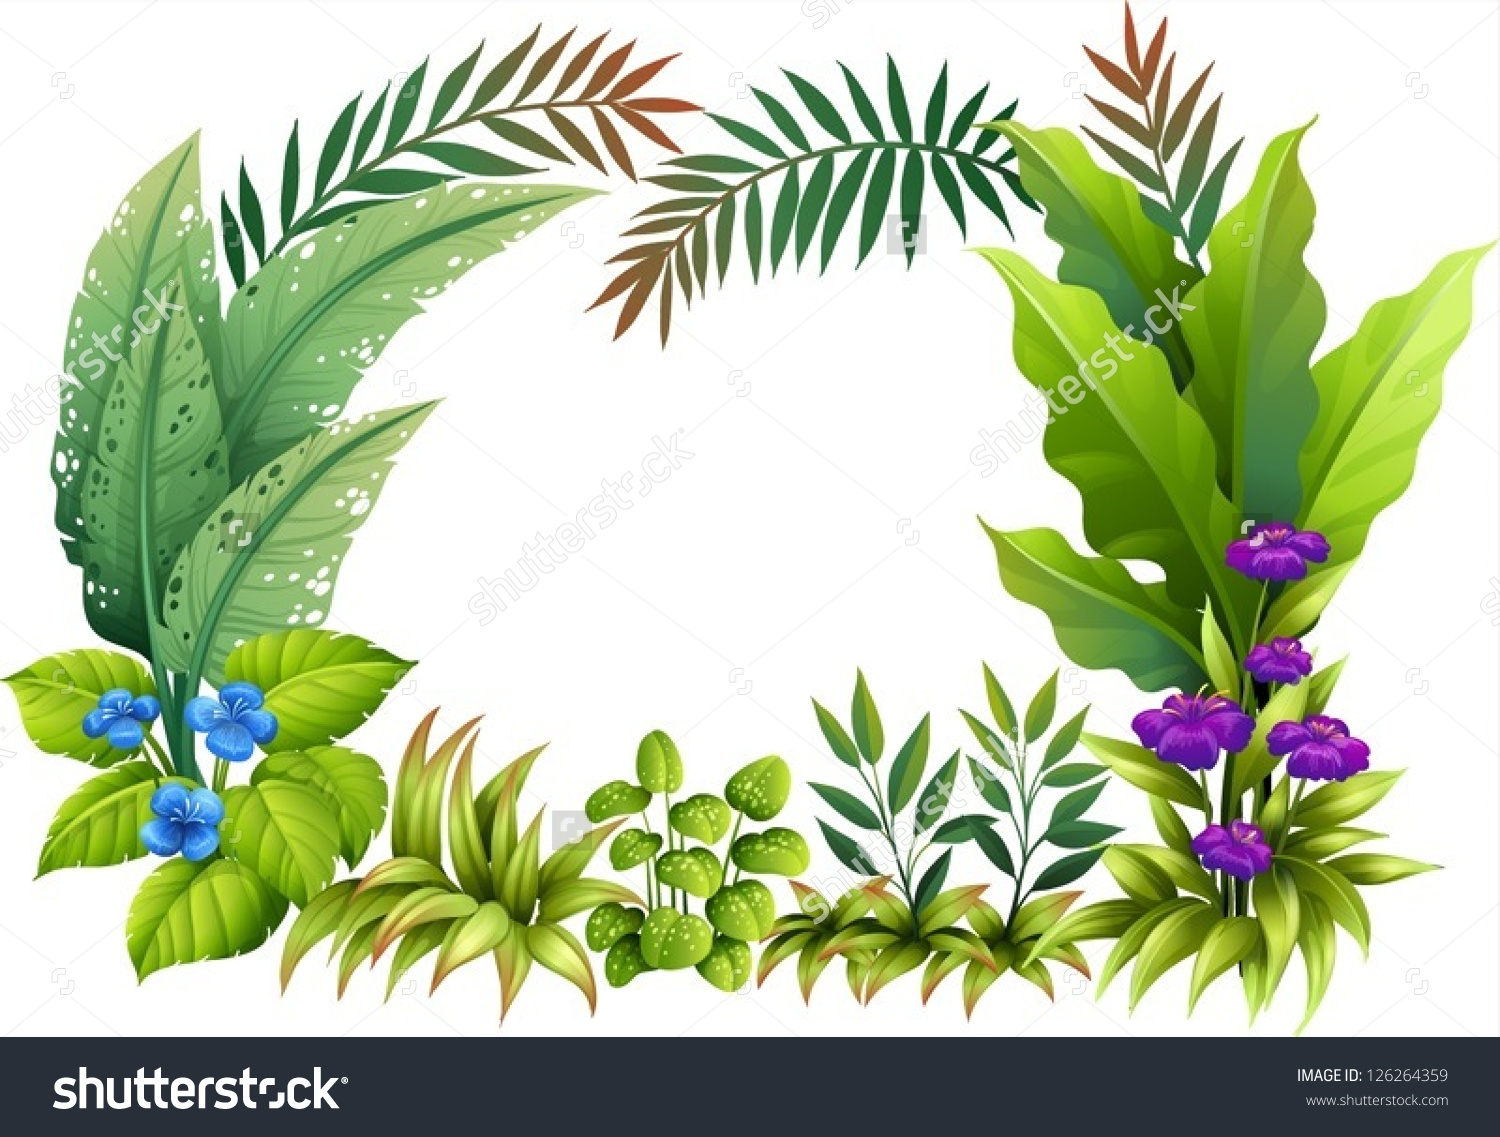 tropical plants clipart clipground free hawaiian clip artt free hawaiian clip art surf boards